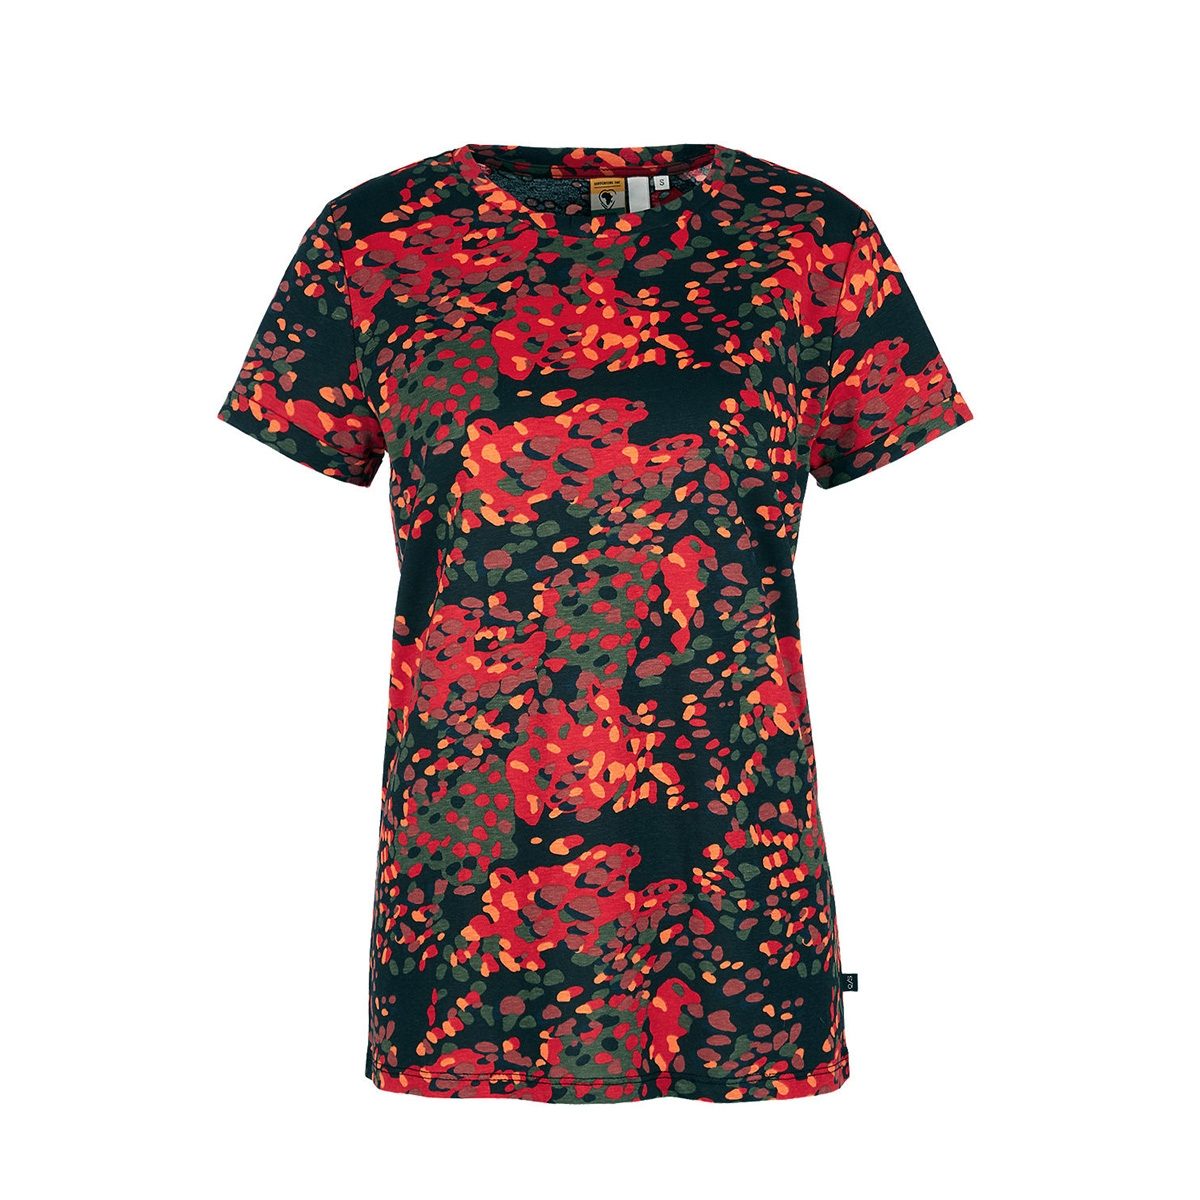 t shirt met all over print 41909325478 q/s designed by t-shirt 99a5